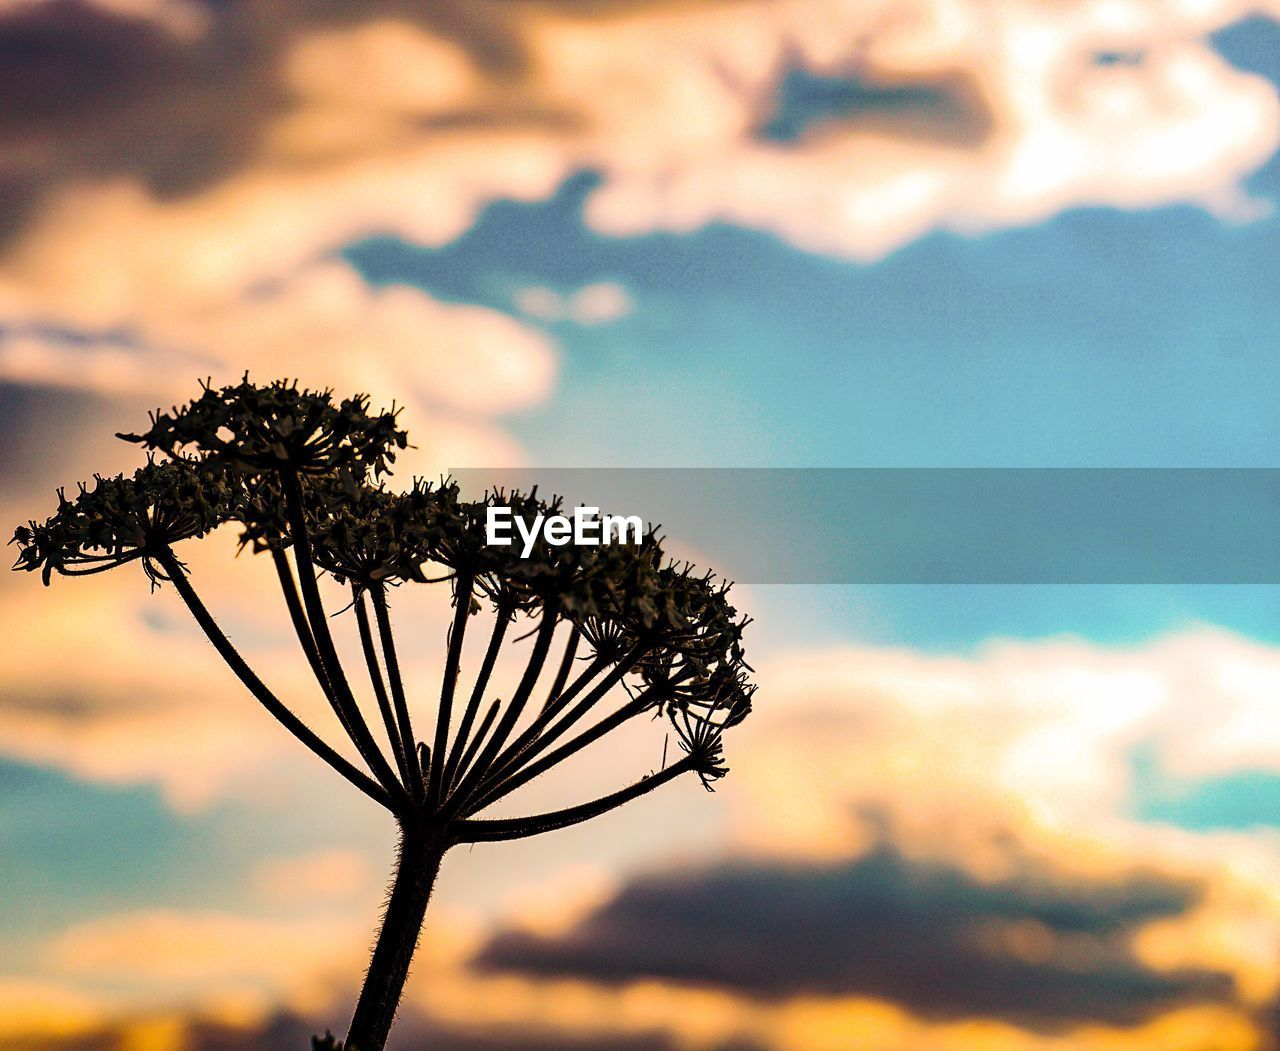 plant, sky, cloud - sky, beauty in nature, focus on foreground, nature, growth, sunset, no people, flower, flowering plant, tranquility, close-up, tree, silhouette, outdoors, fragility, scenics - nature, vulnerability, low angle view, flower head, sepal